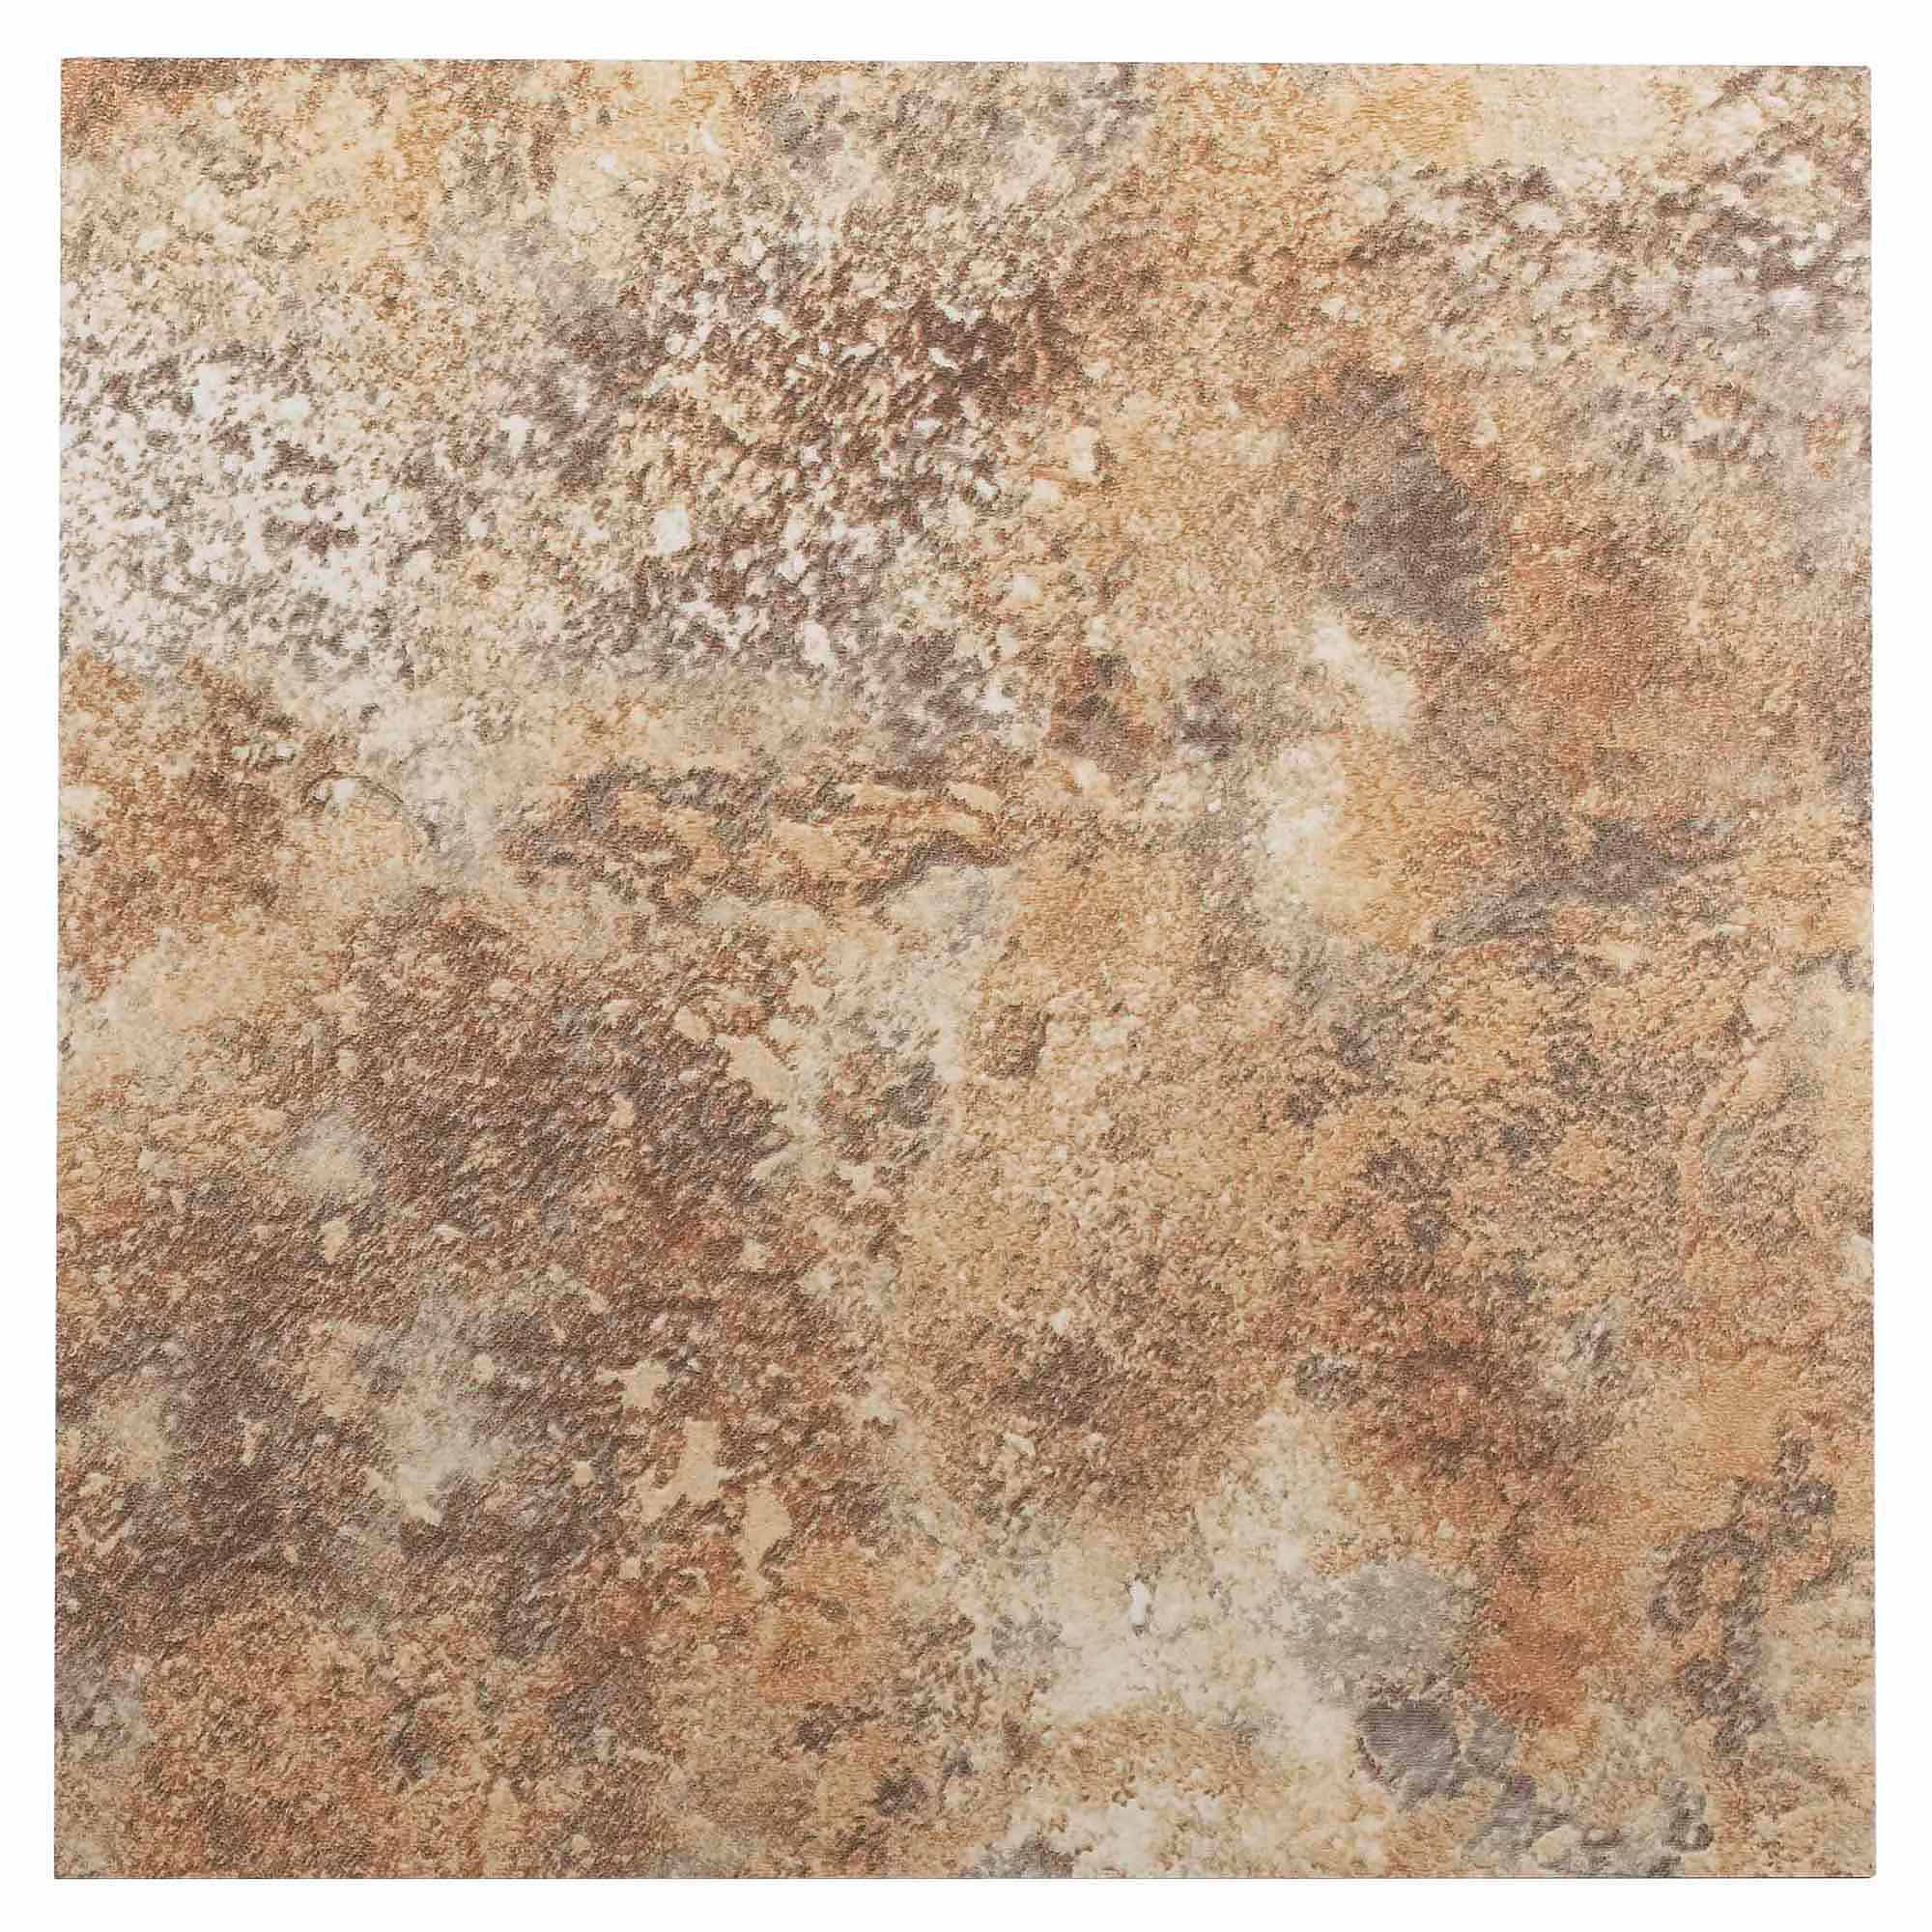 Nexus granite 12x12 self adhesive vinyl floor tile 20 tiles20 nexus granite 12x12 self adhesive vinyl floor tile 20 tiles20 sqft walmart dailygadgetfo Images